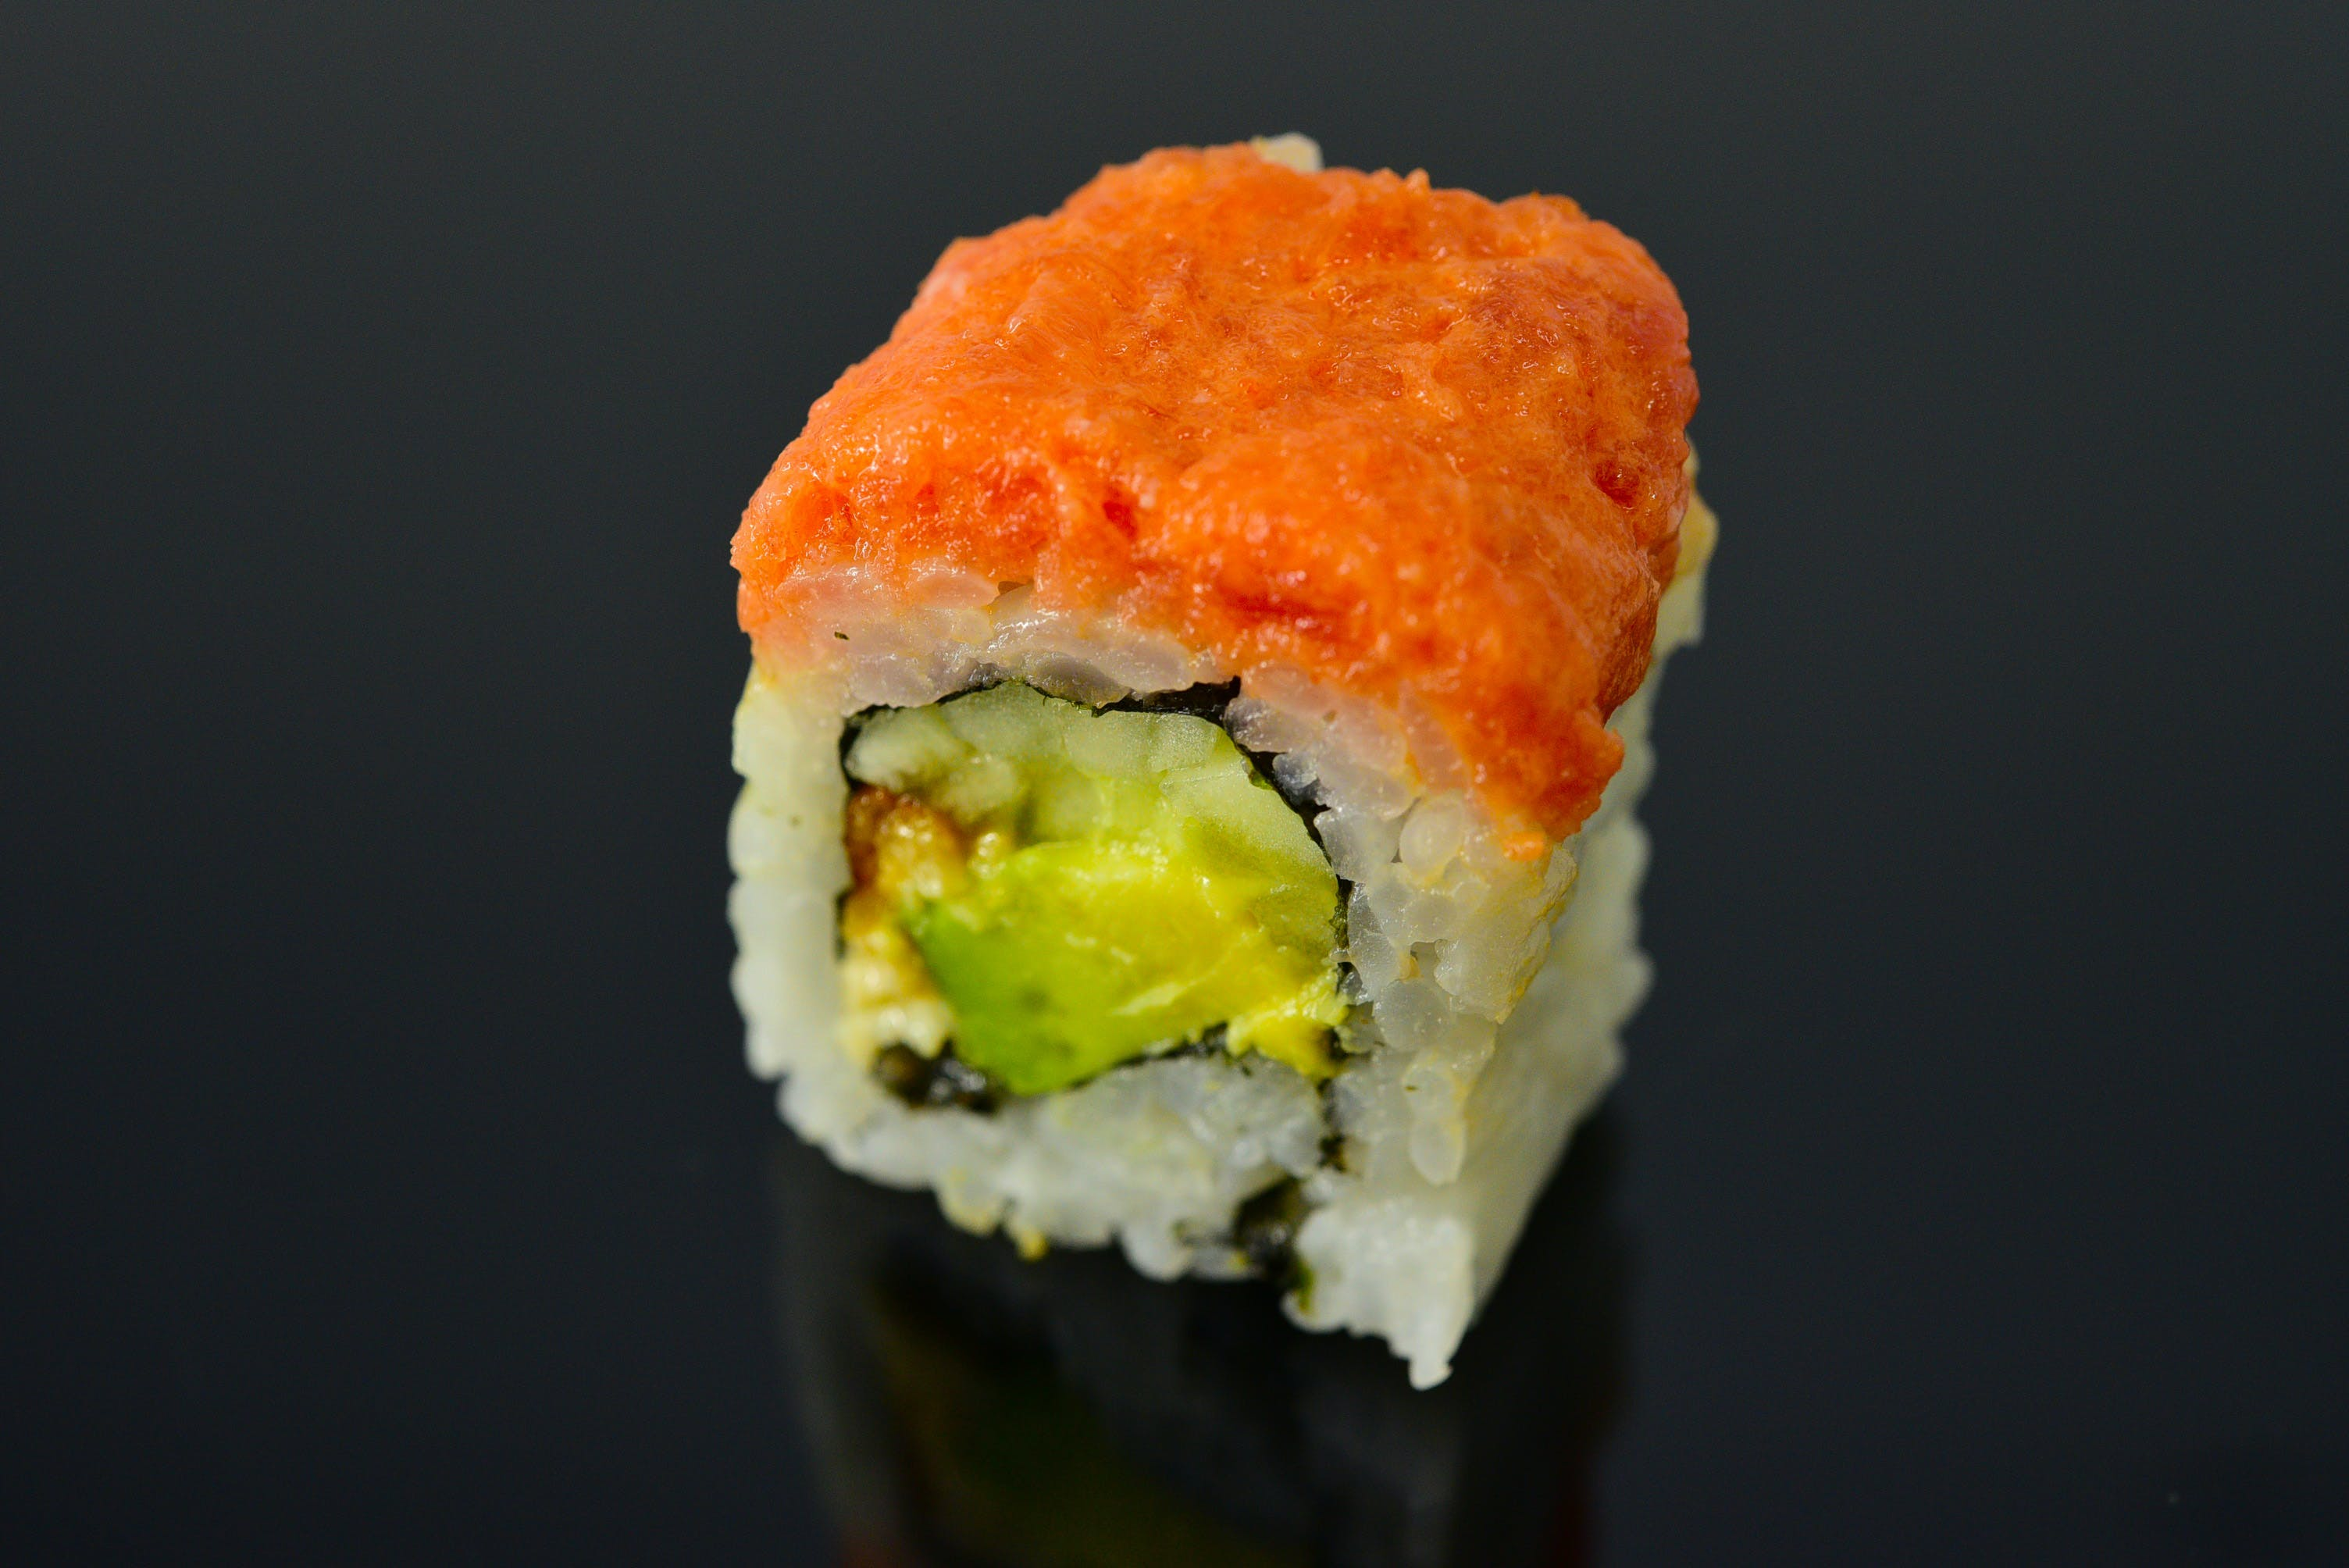 King Roll from Fin Sushi in Madison, WI